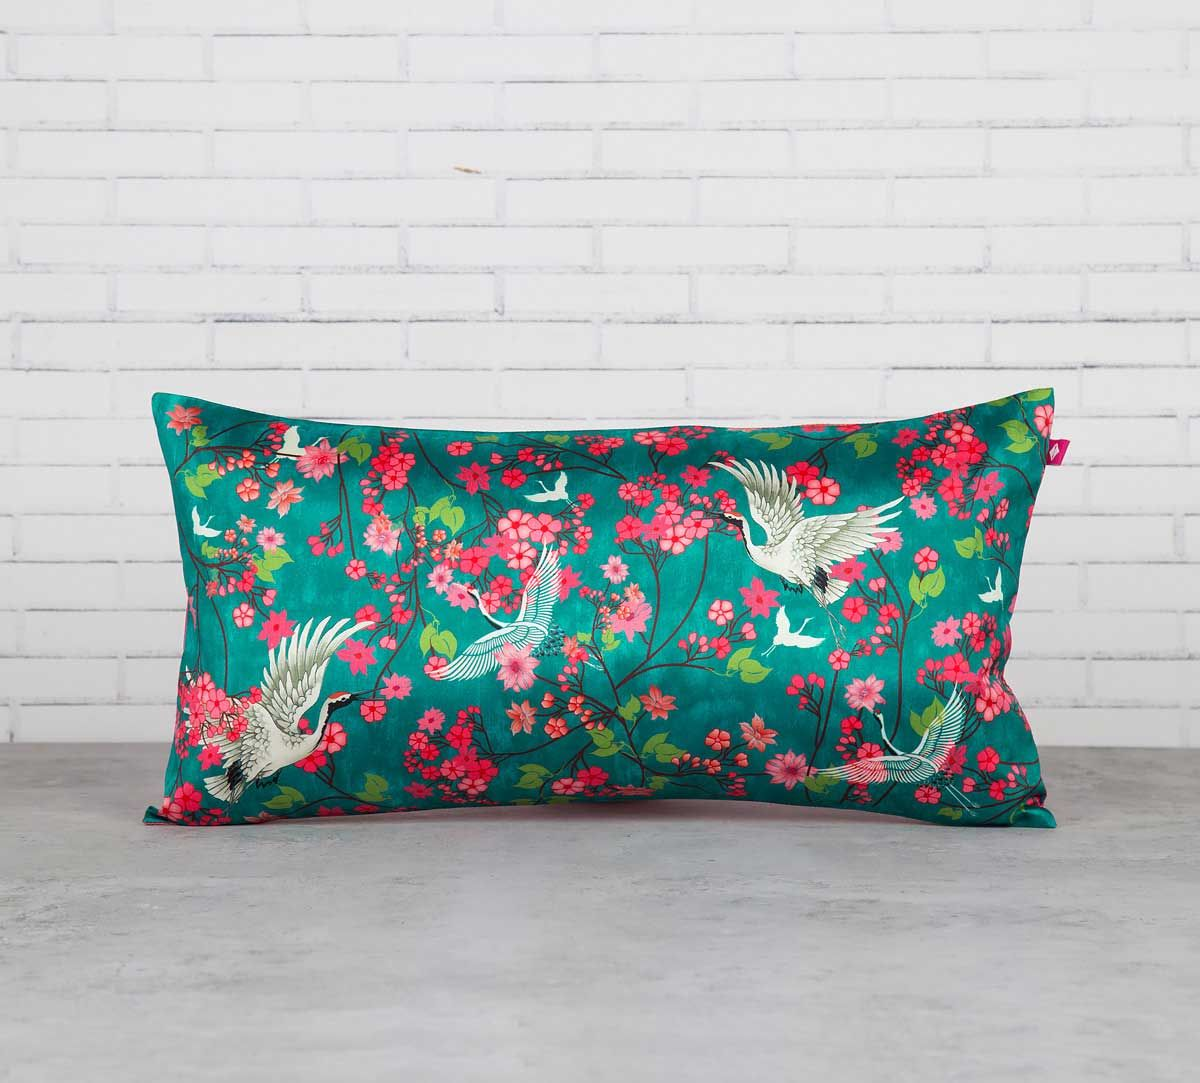 India Circus Legendary Cranes Floral Flutter Blended Taf Silk Cushion Cover